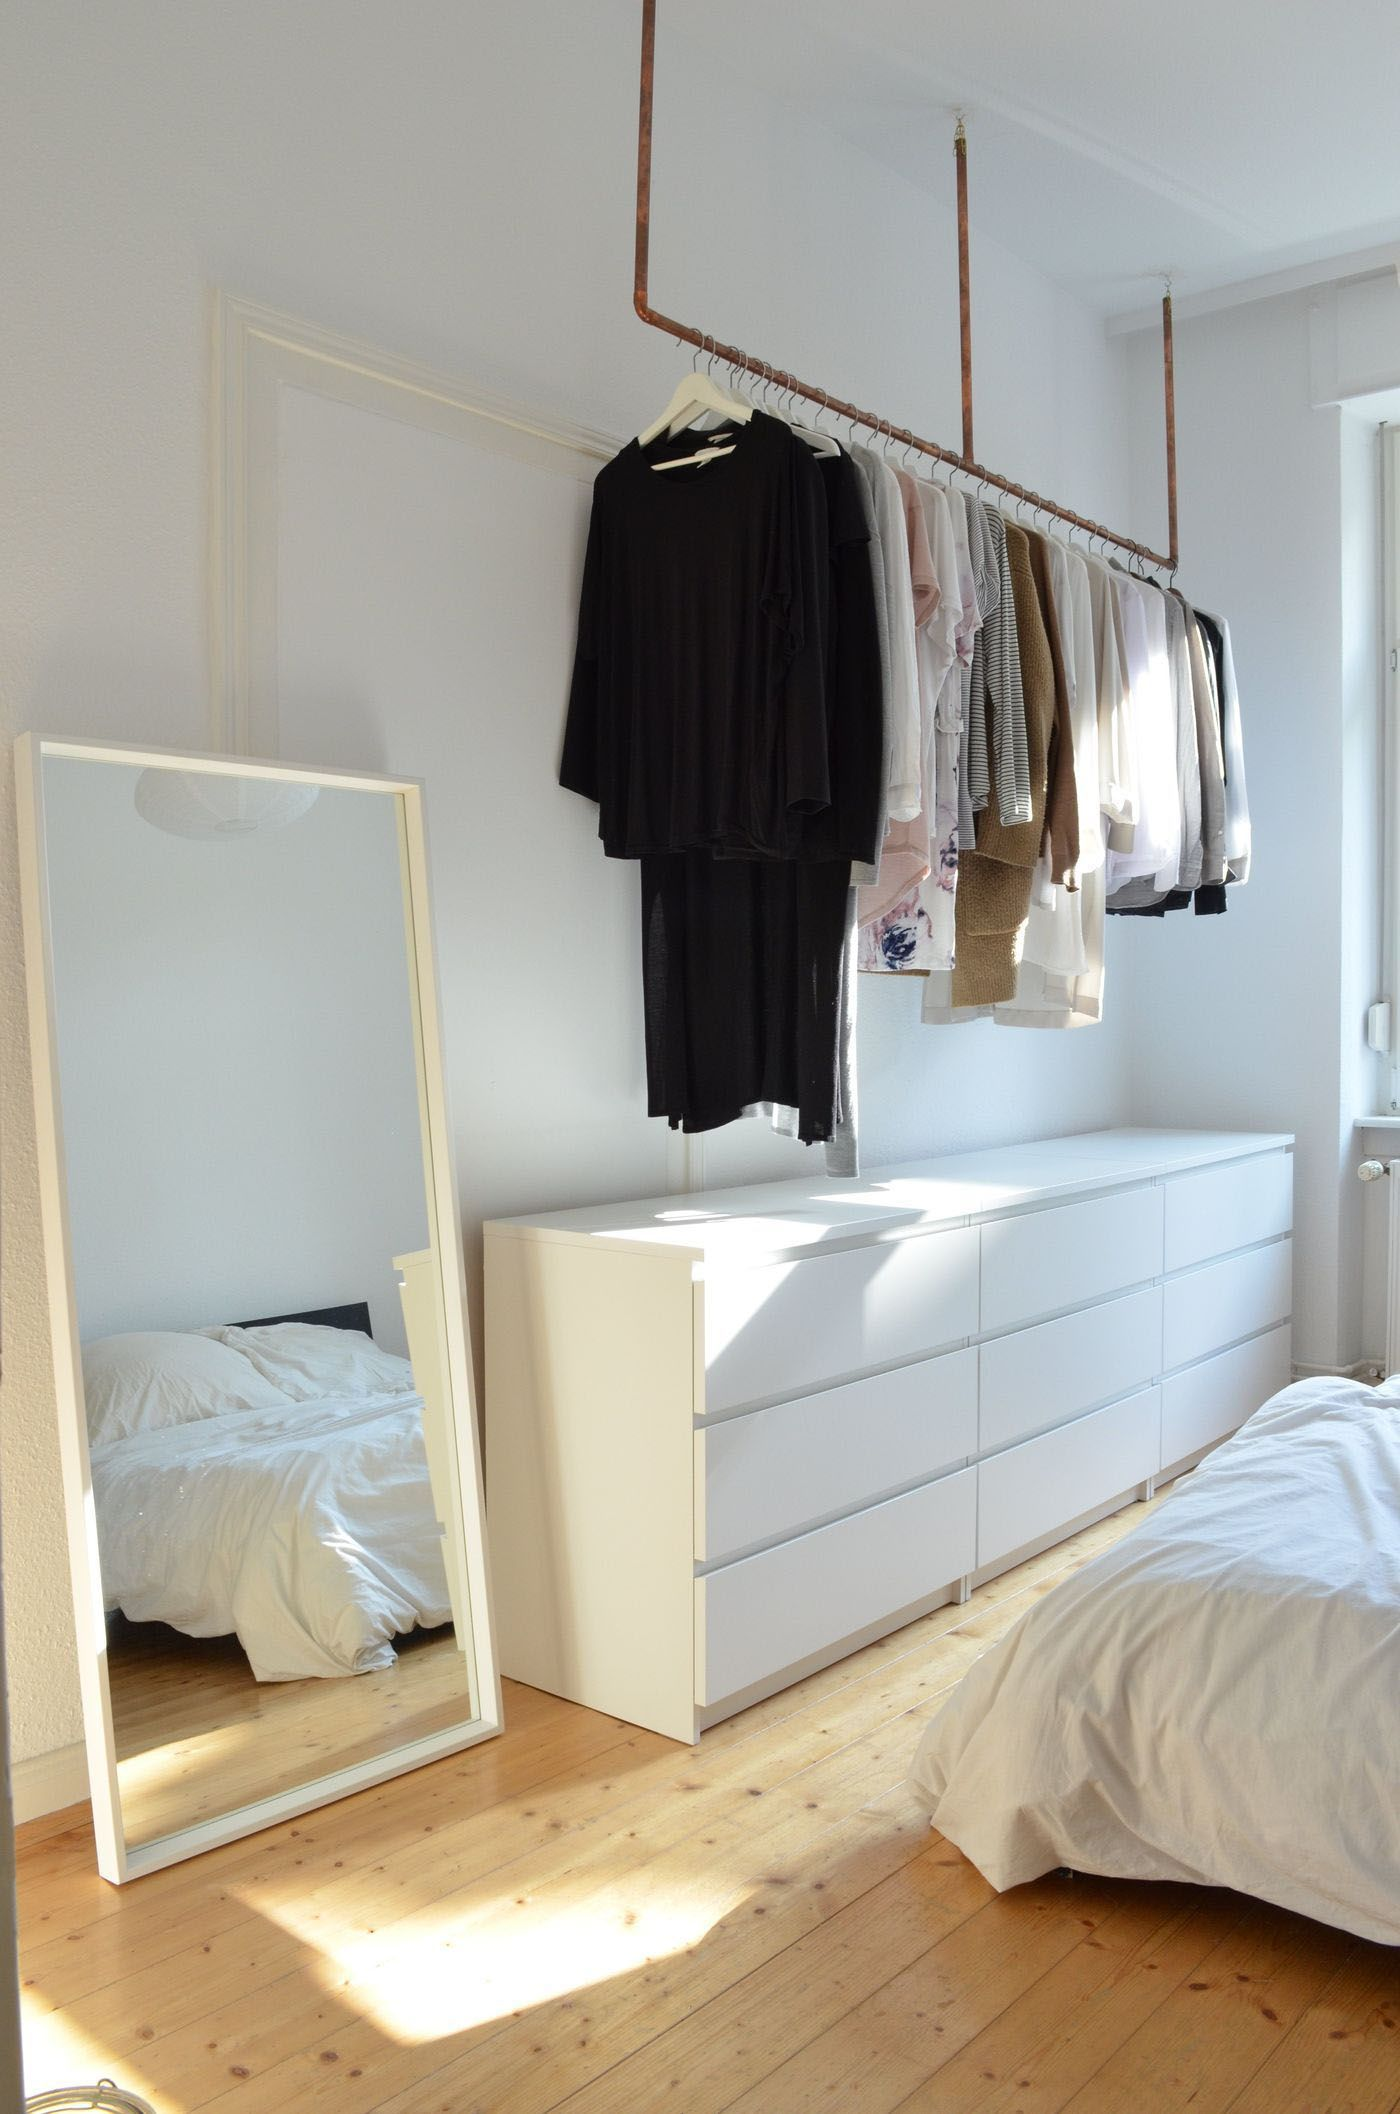 15 Tiny Small Apartment Layout Concepts 2020 Modern Tiny Clever Industrial Closet Open Wardrobe Bedroom Storage